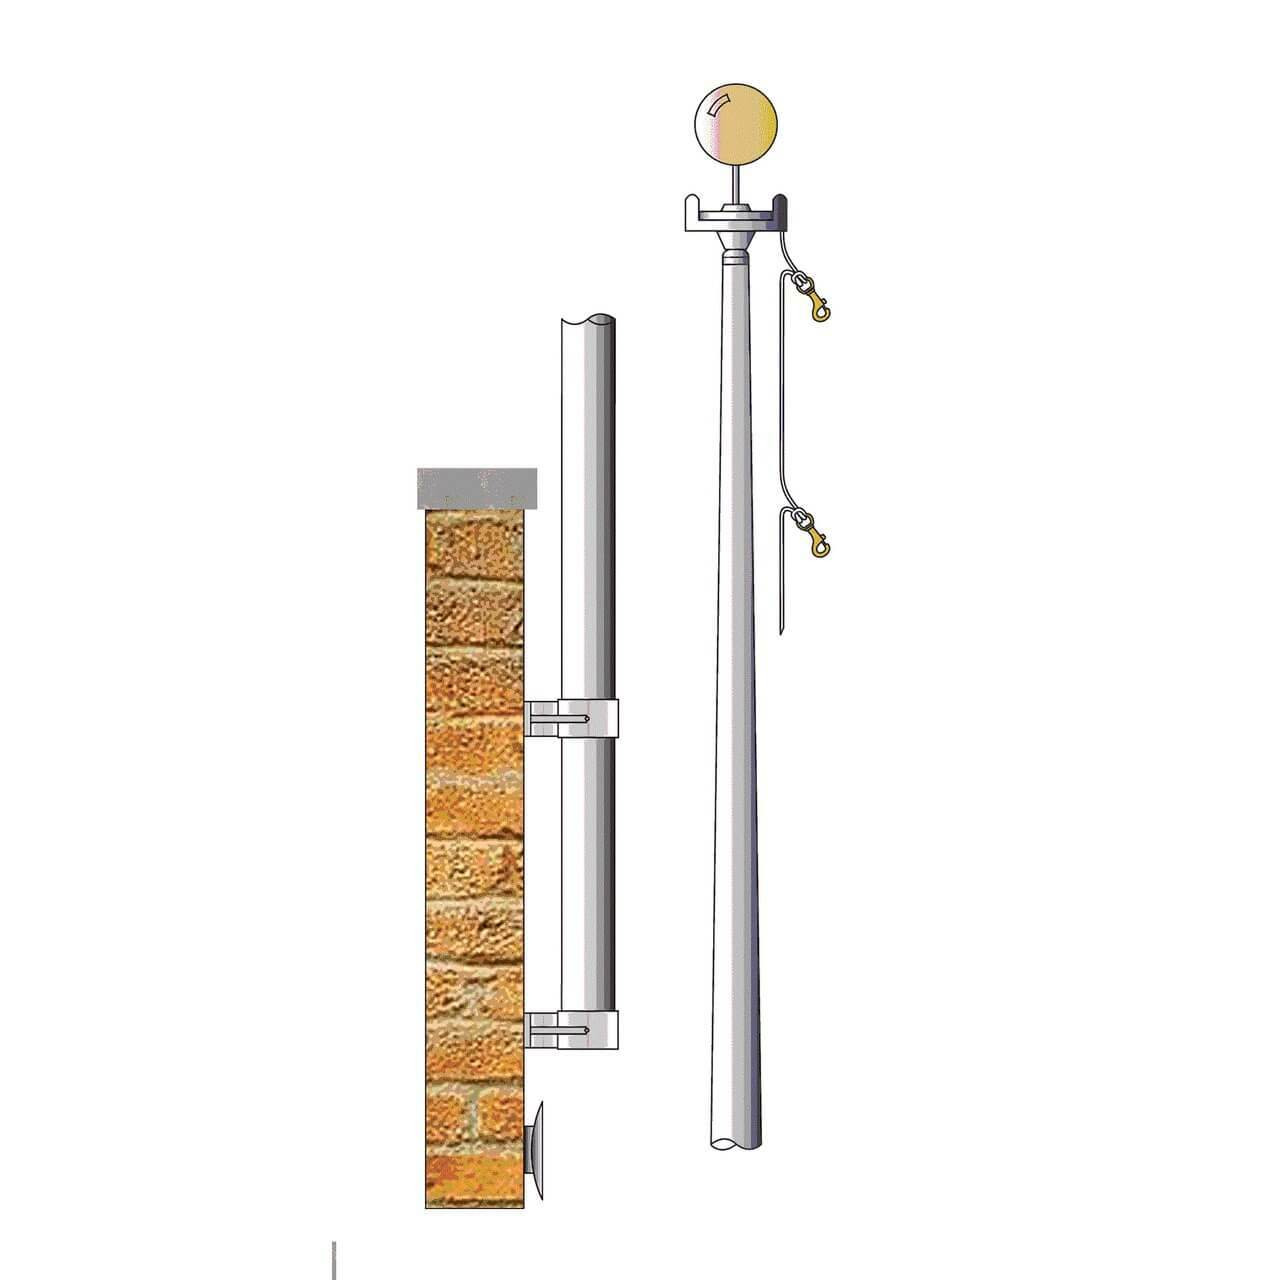 30 Vertical Wall Mounted Flagpole LVWC30 with gold anodized aluminum ball ornament mounted on illustrated brick wall